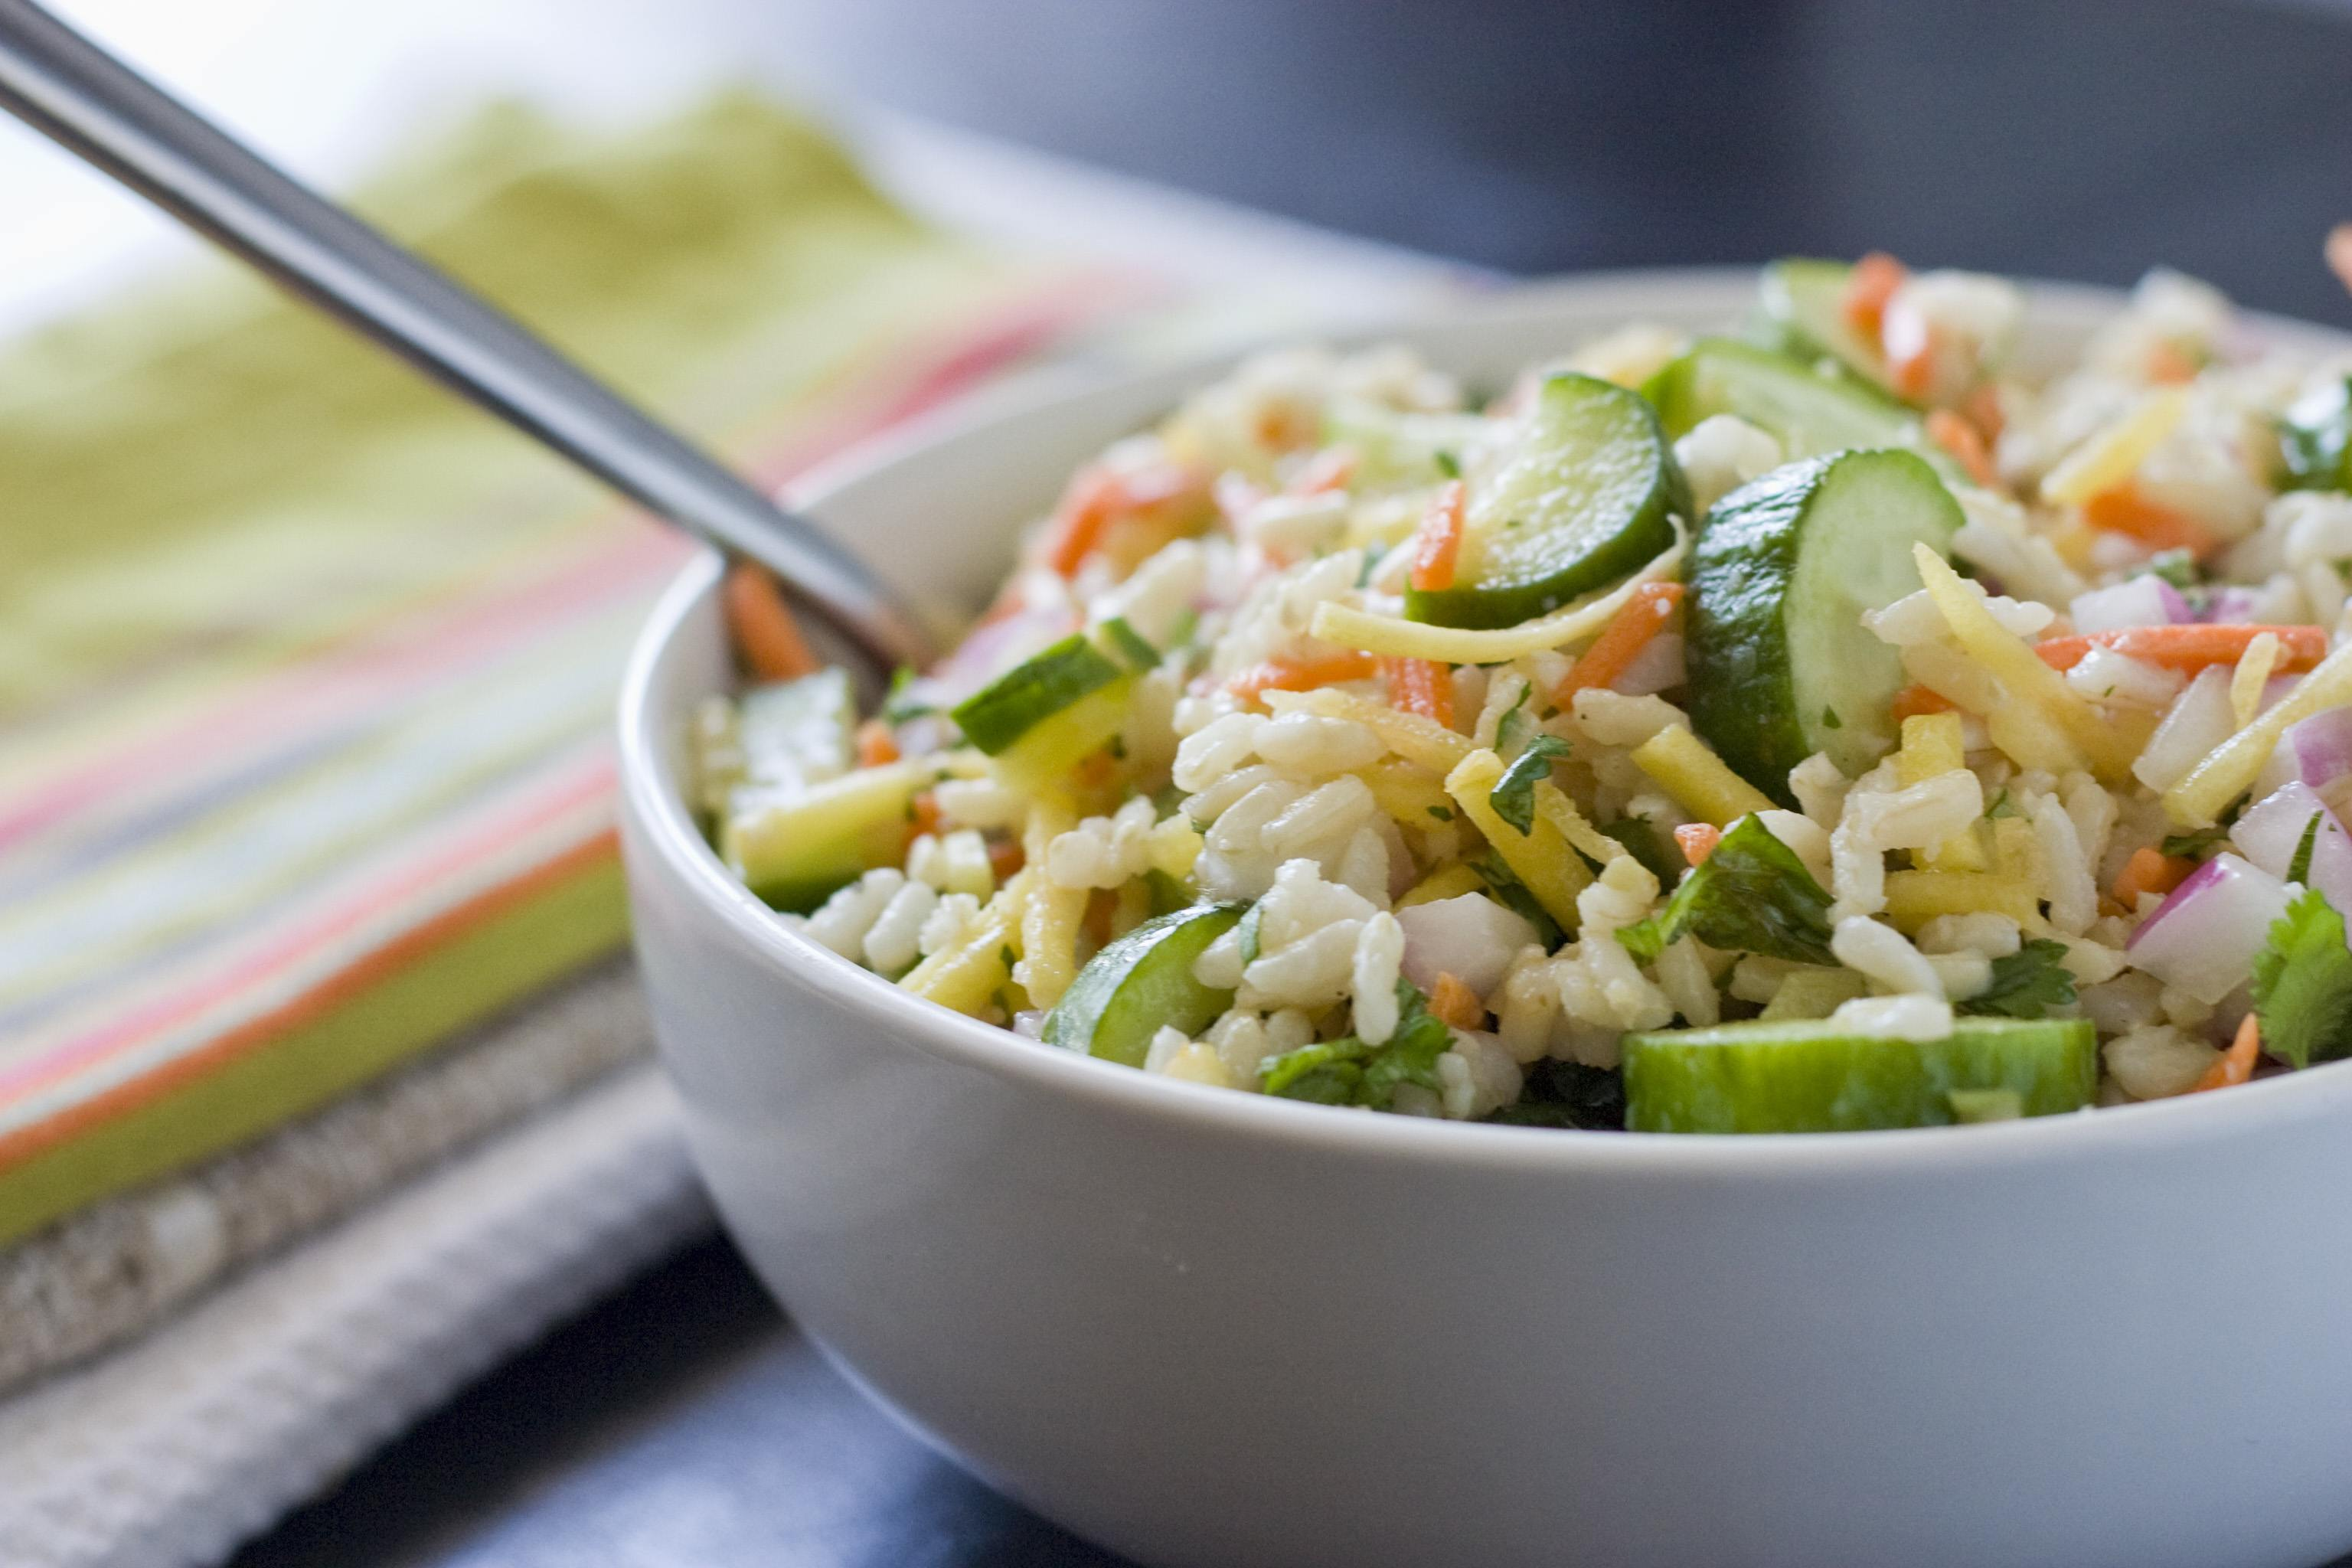 Sweet Lemon, Cucumber & Brown Rice Salad